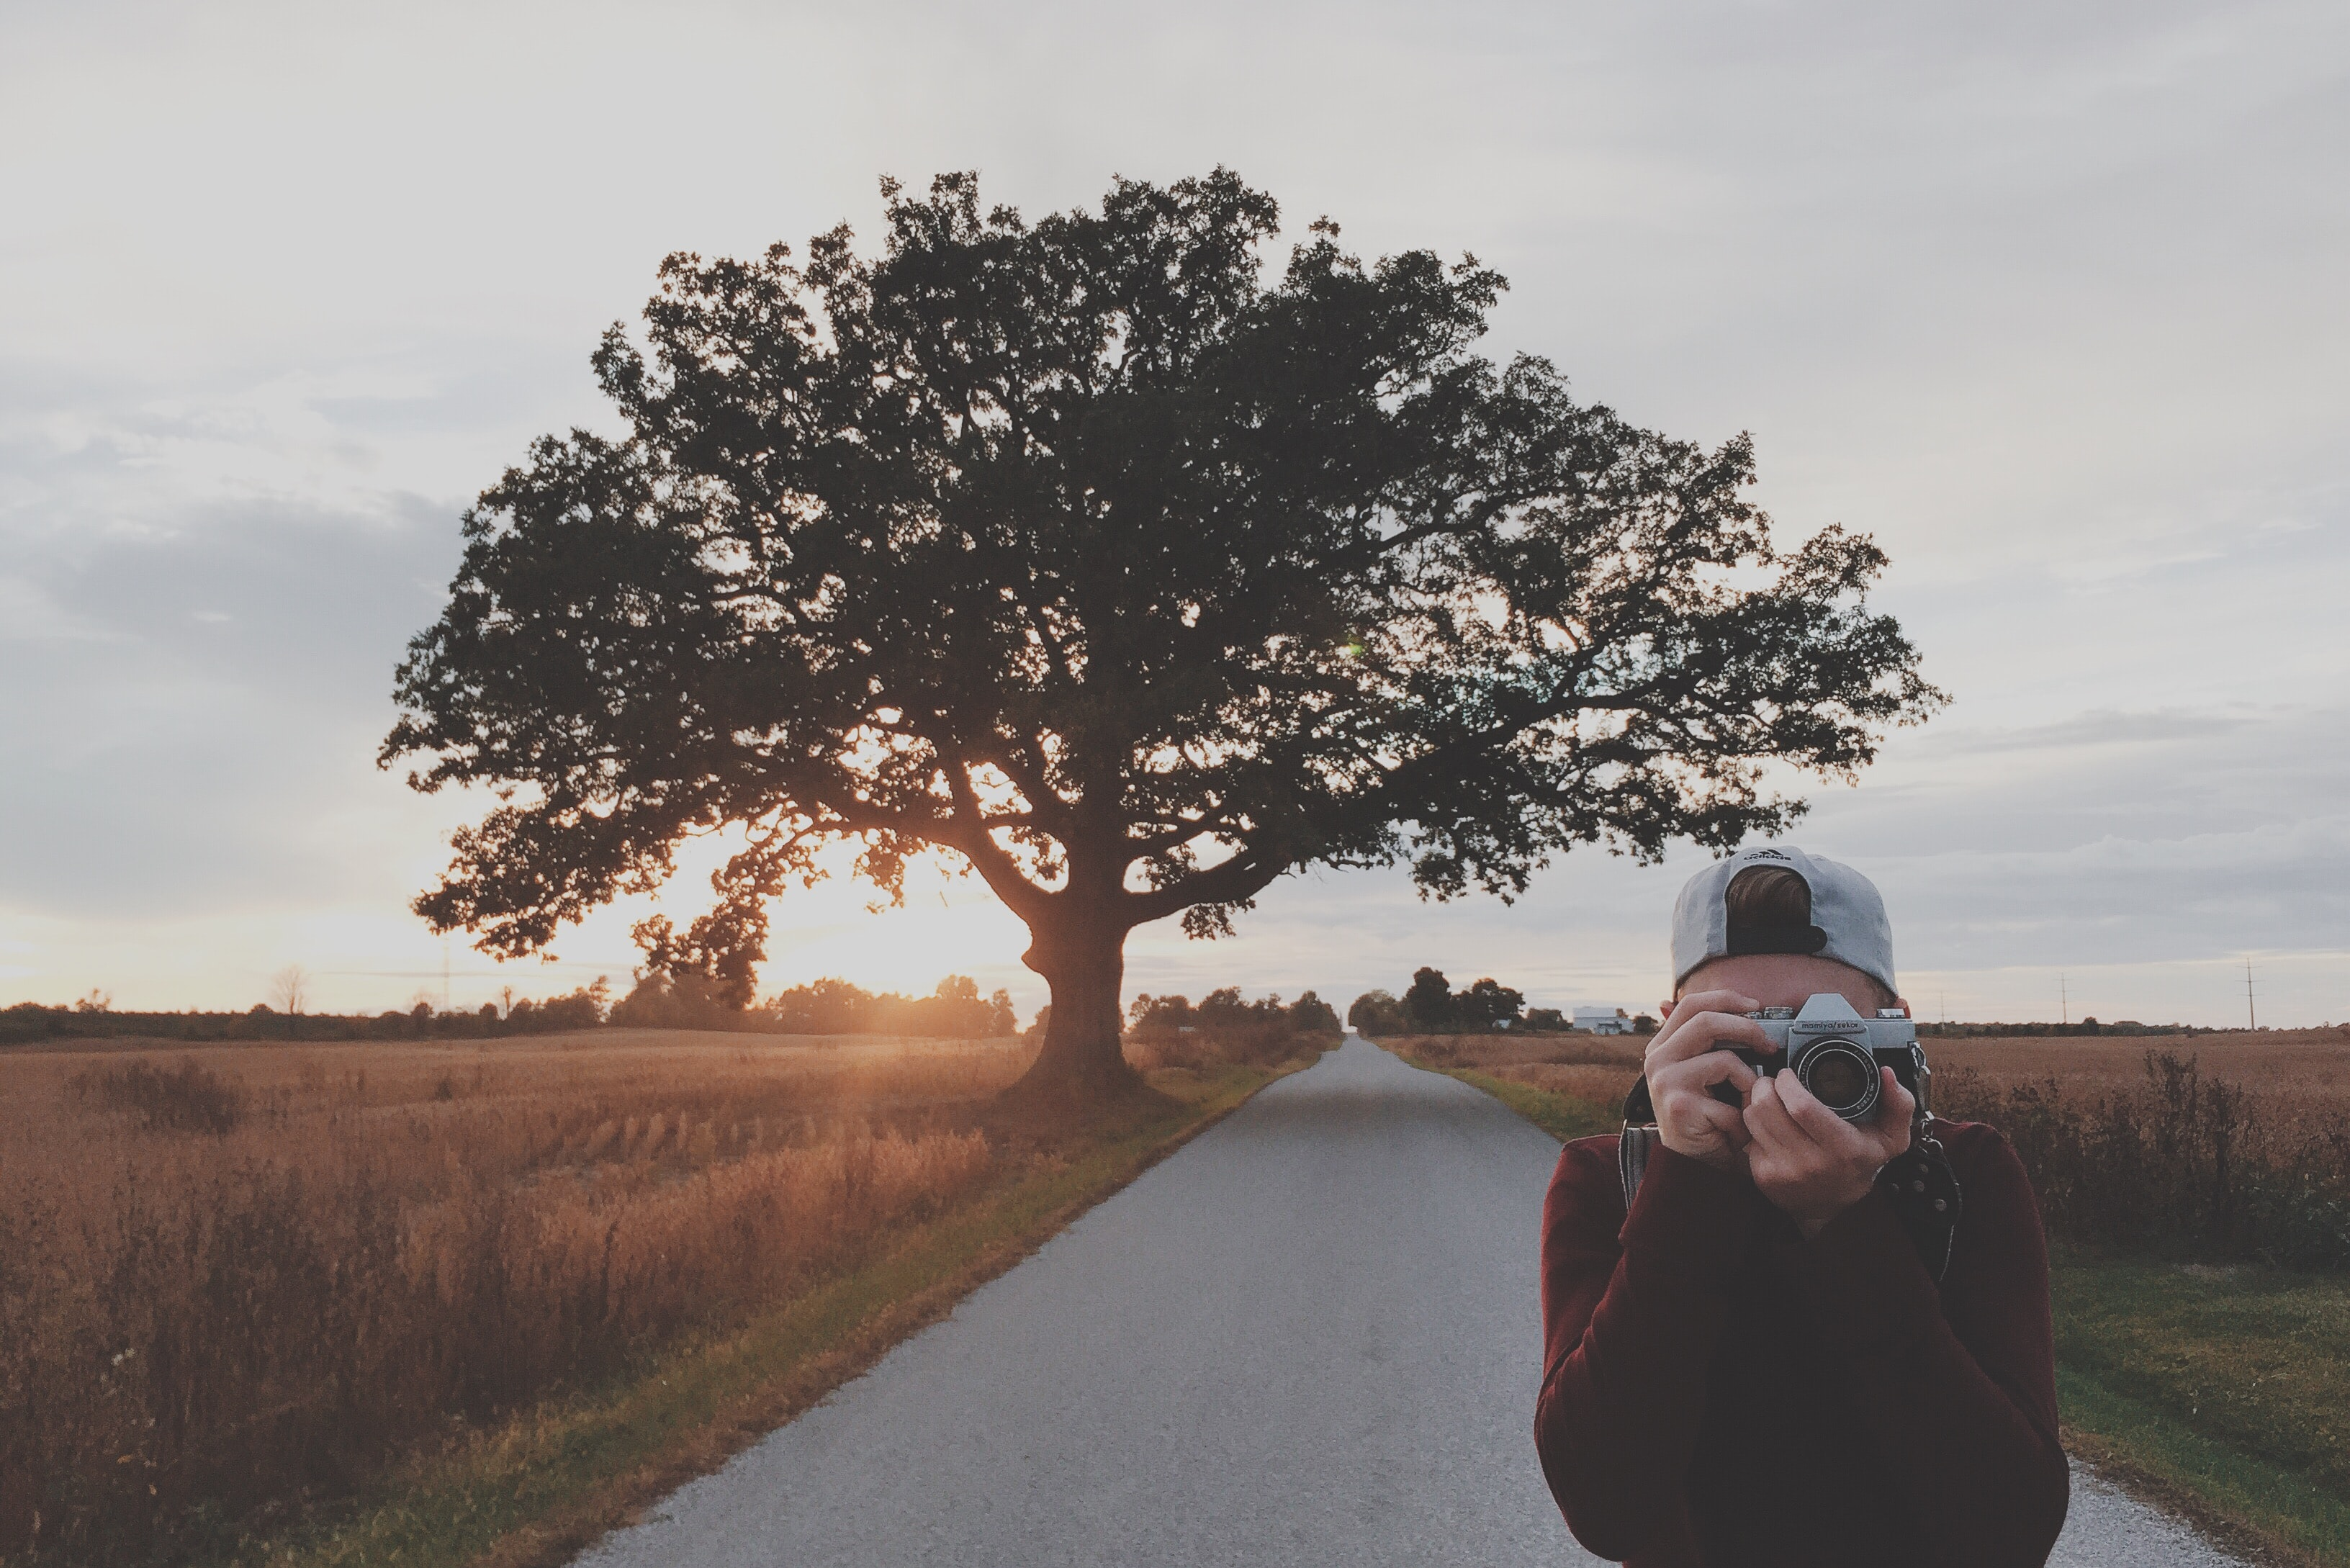 A young man with a camera taking pictures on an empty rural road